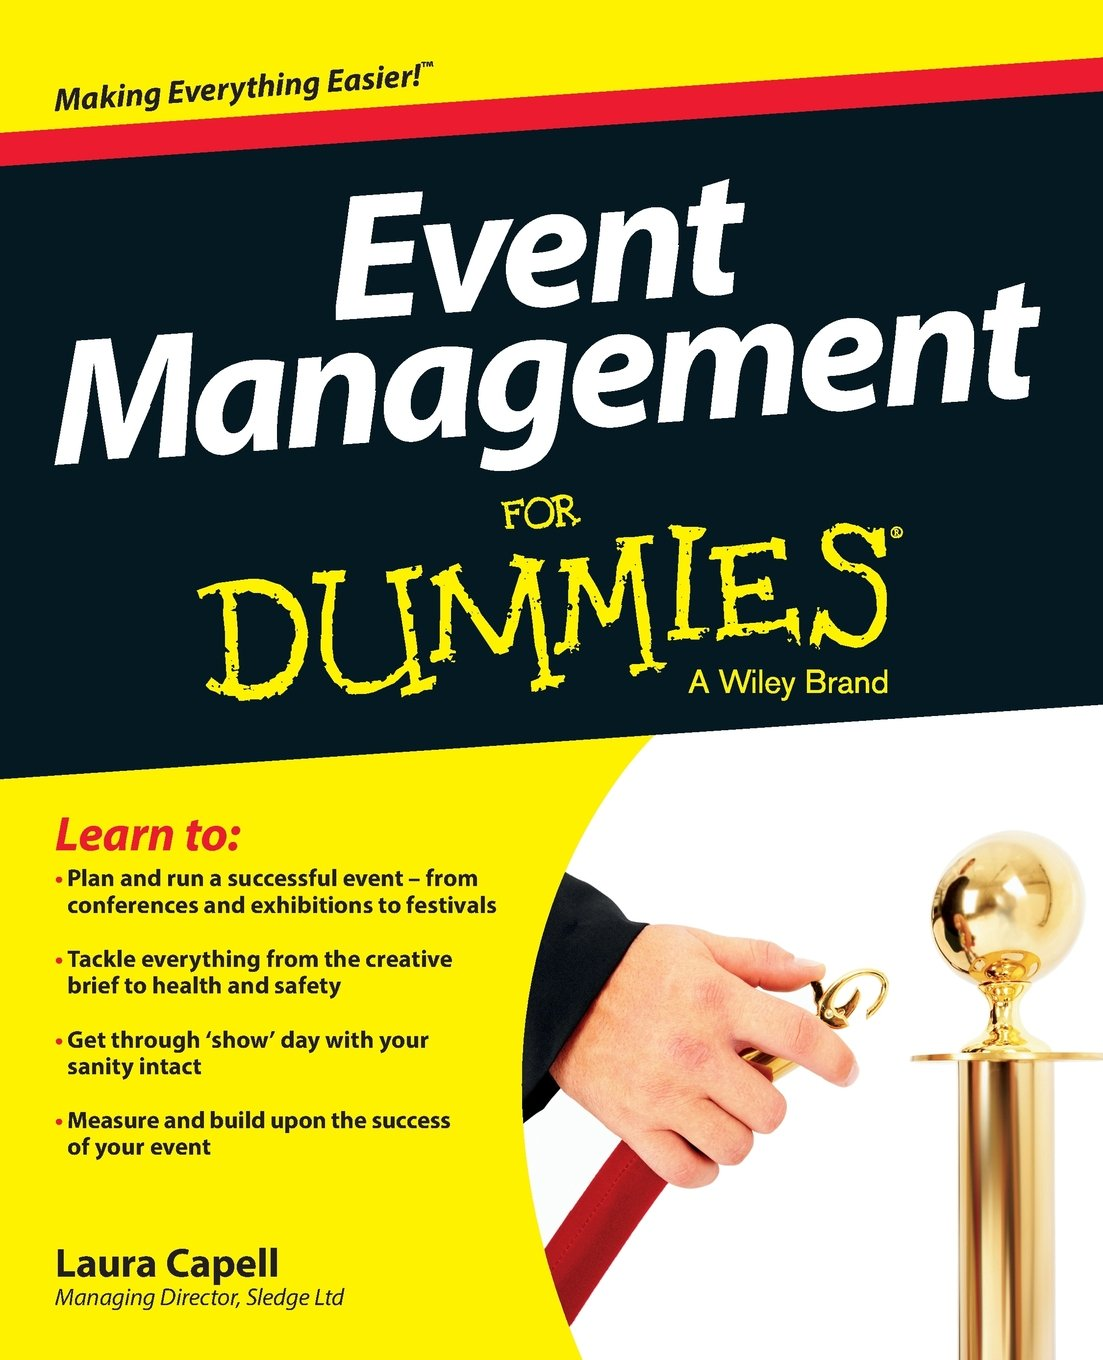 Buy event management for dummies for dummies series book online buy event management for dummies for dummies series book online at low prices in india event management for dummies for dummies series reviews 1betcityfo Image collections